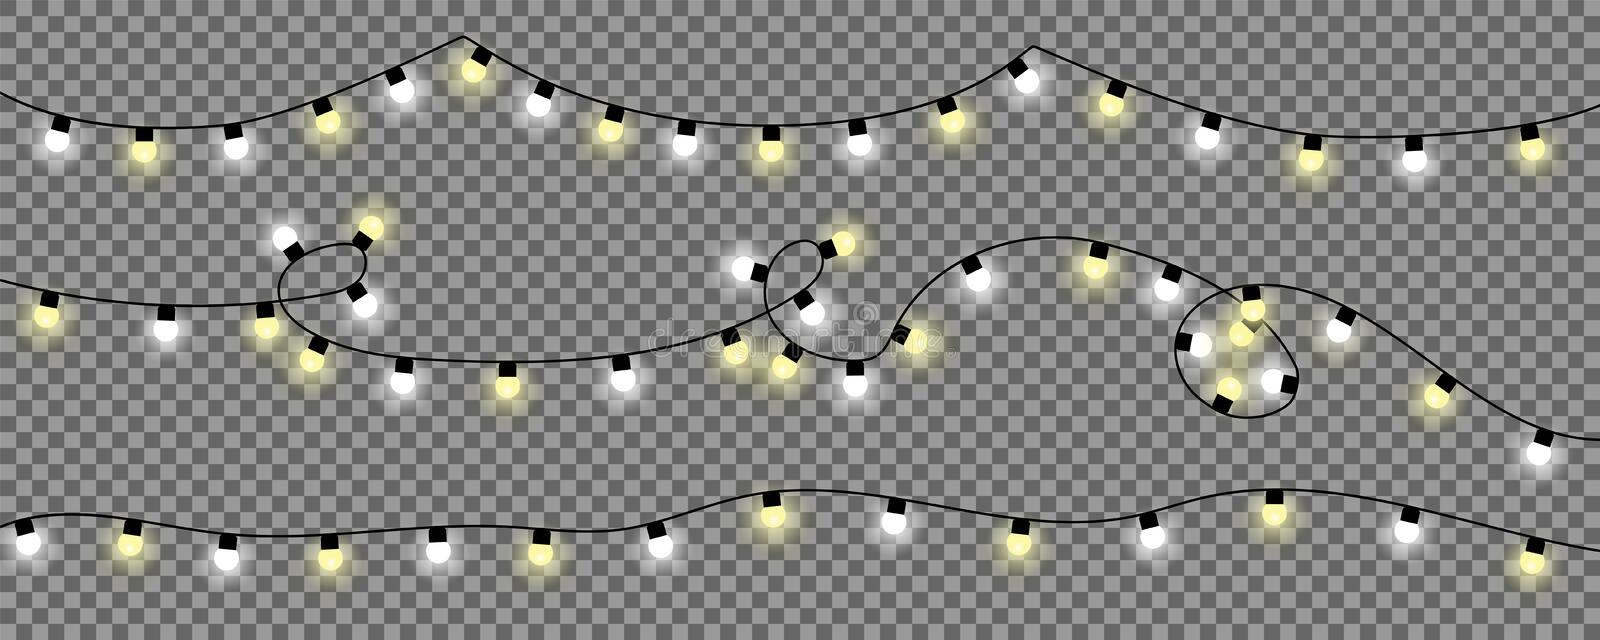 Christmas Lights on transparent background. Christmas light in white and yellow color vector illustration